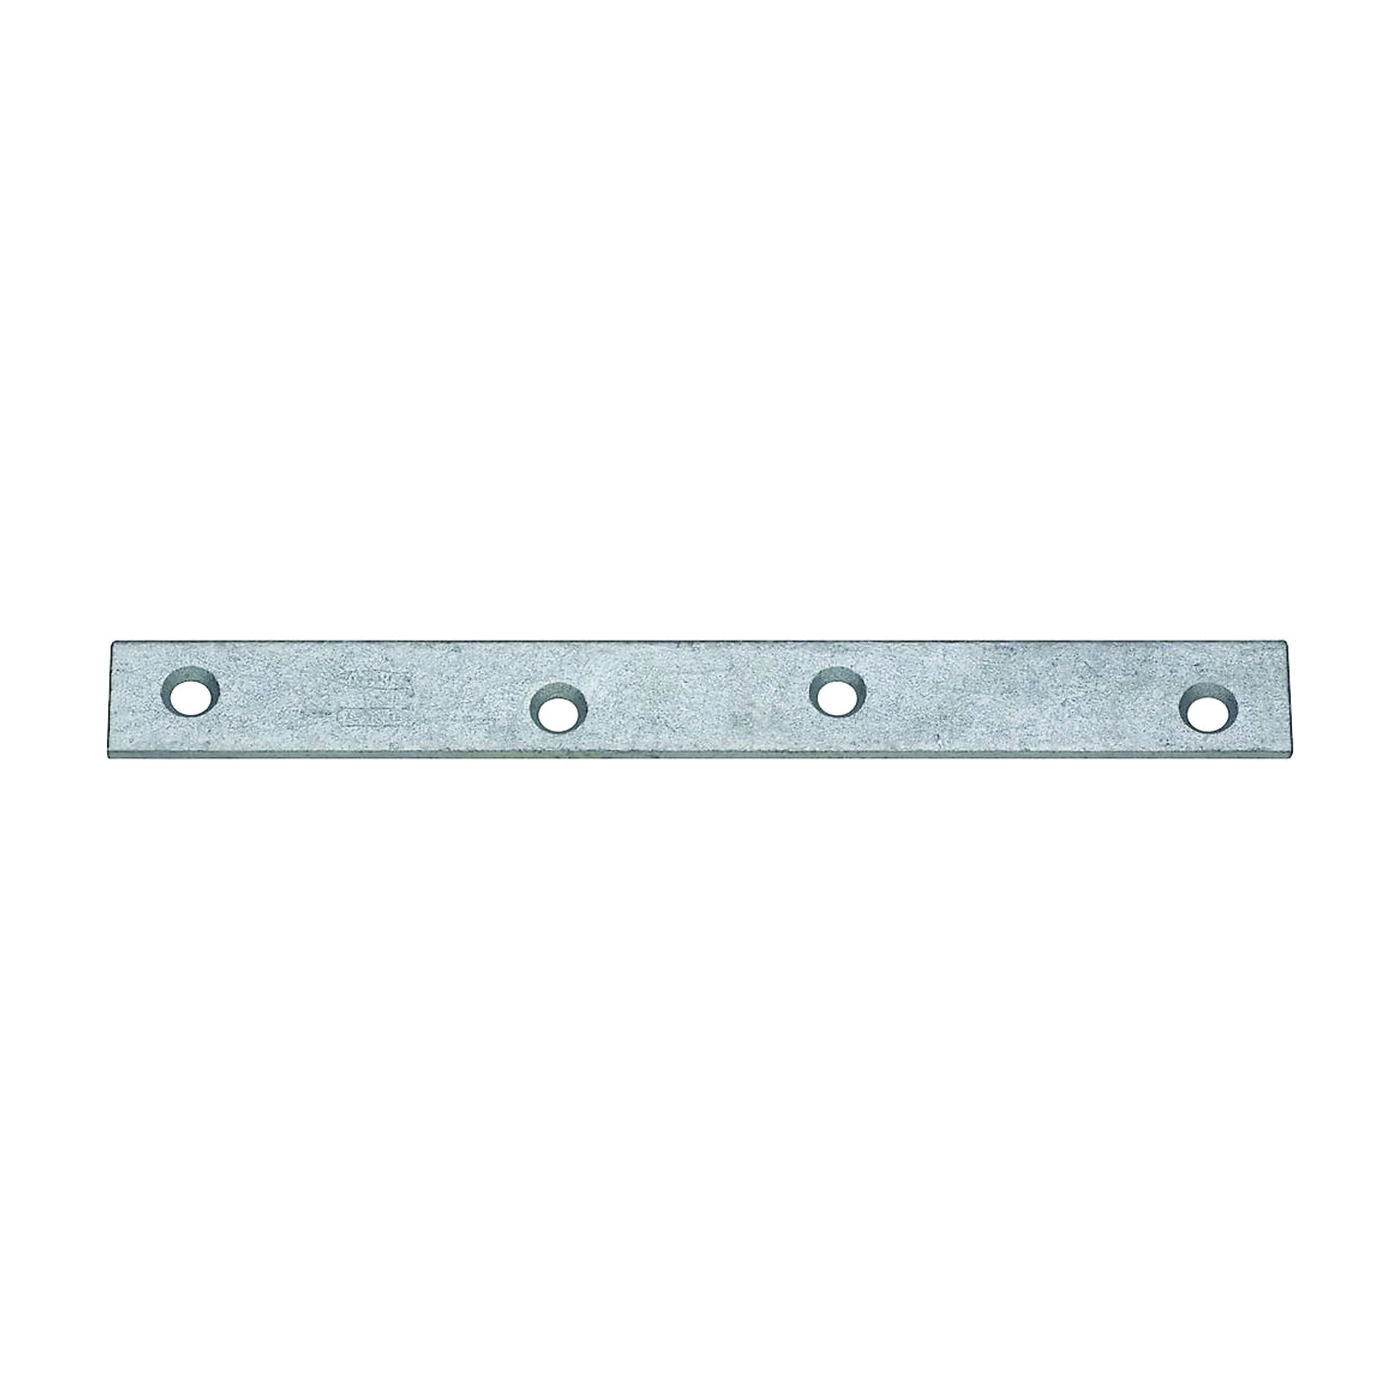 Picture of National Hardware N220-350 Mending Brace, 8 in L, 7/8 in W, Steel, Galvanized, Screw Mounting